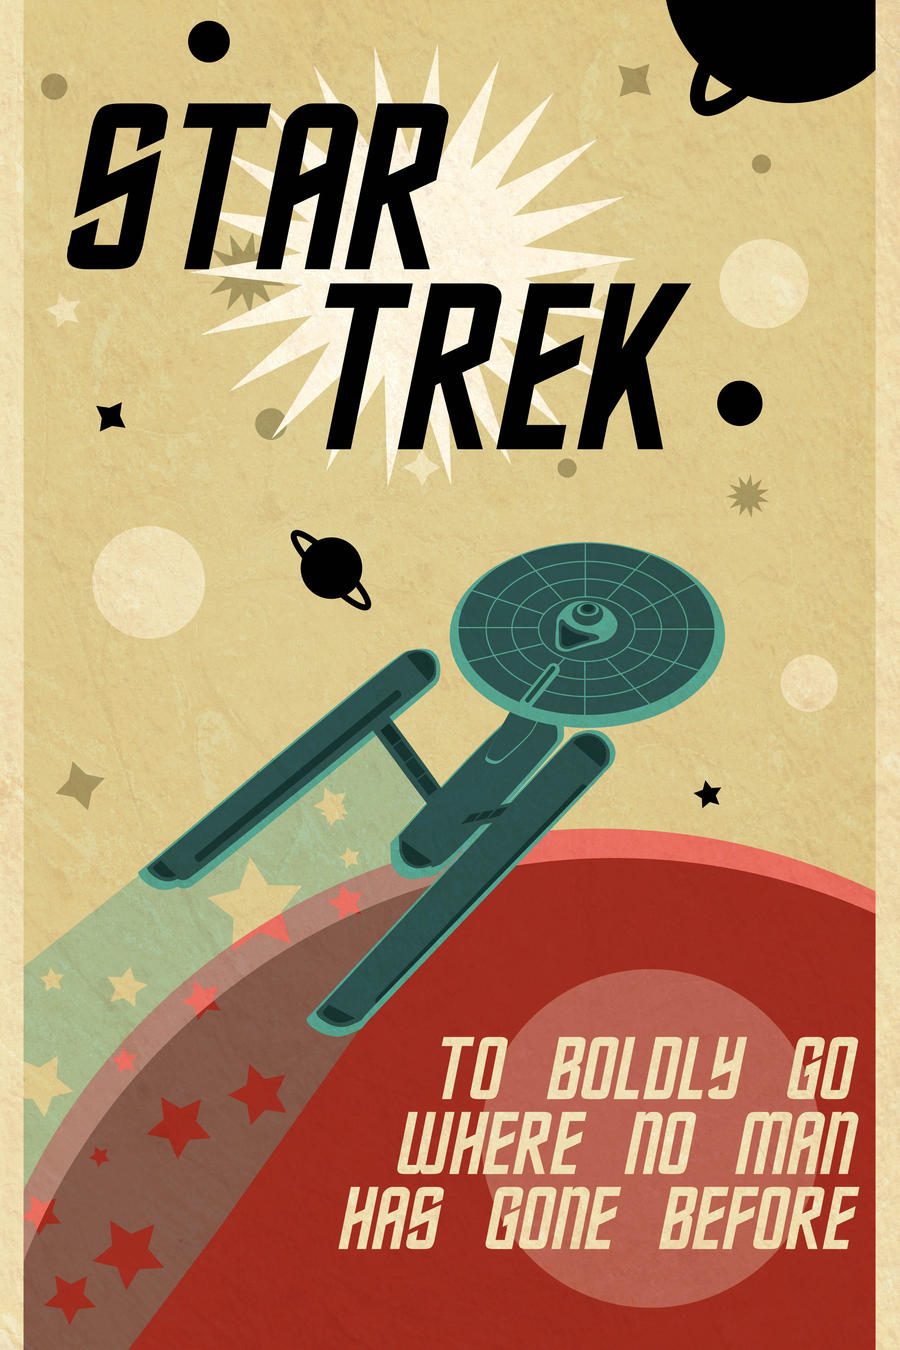 Retro Star Trek Poster by killashandra-ree